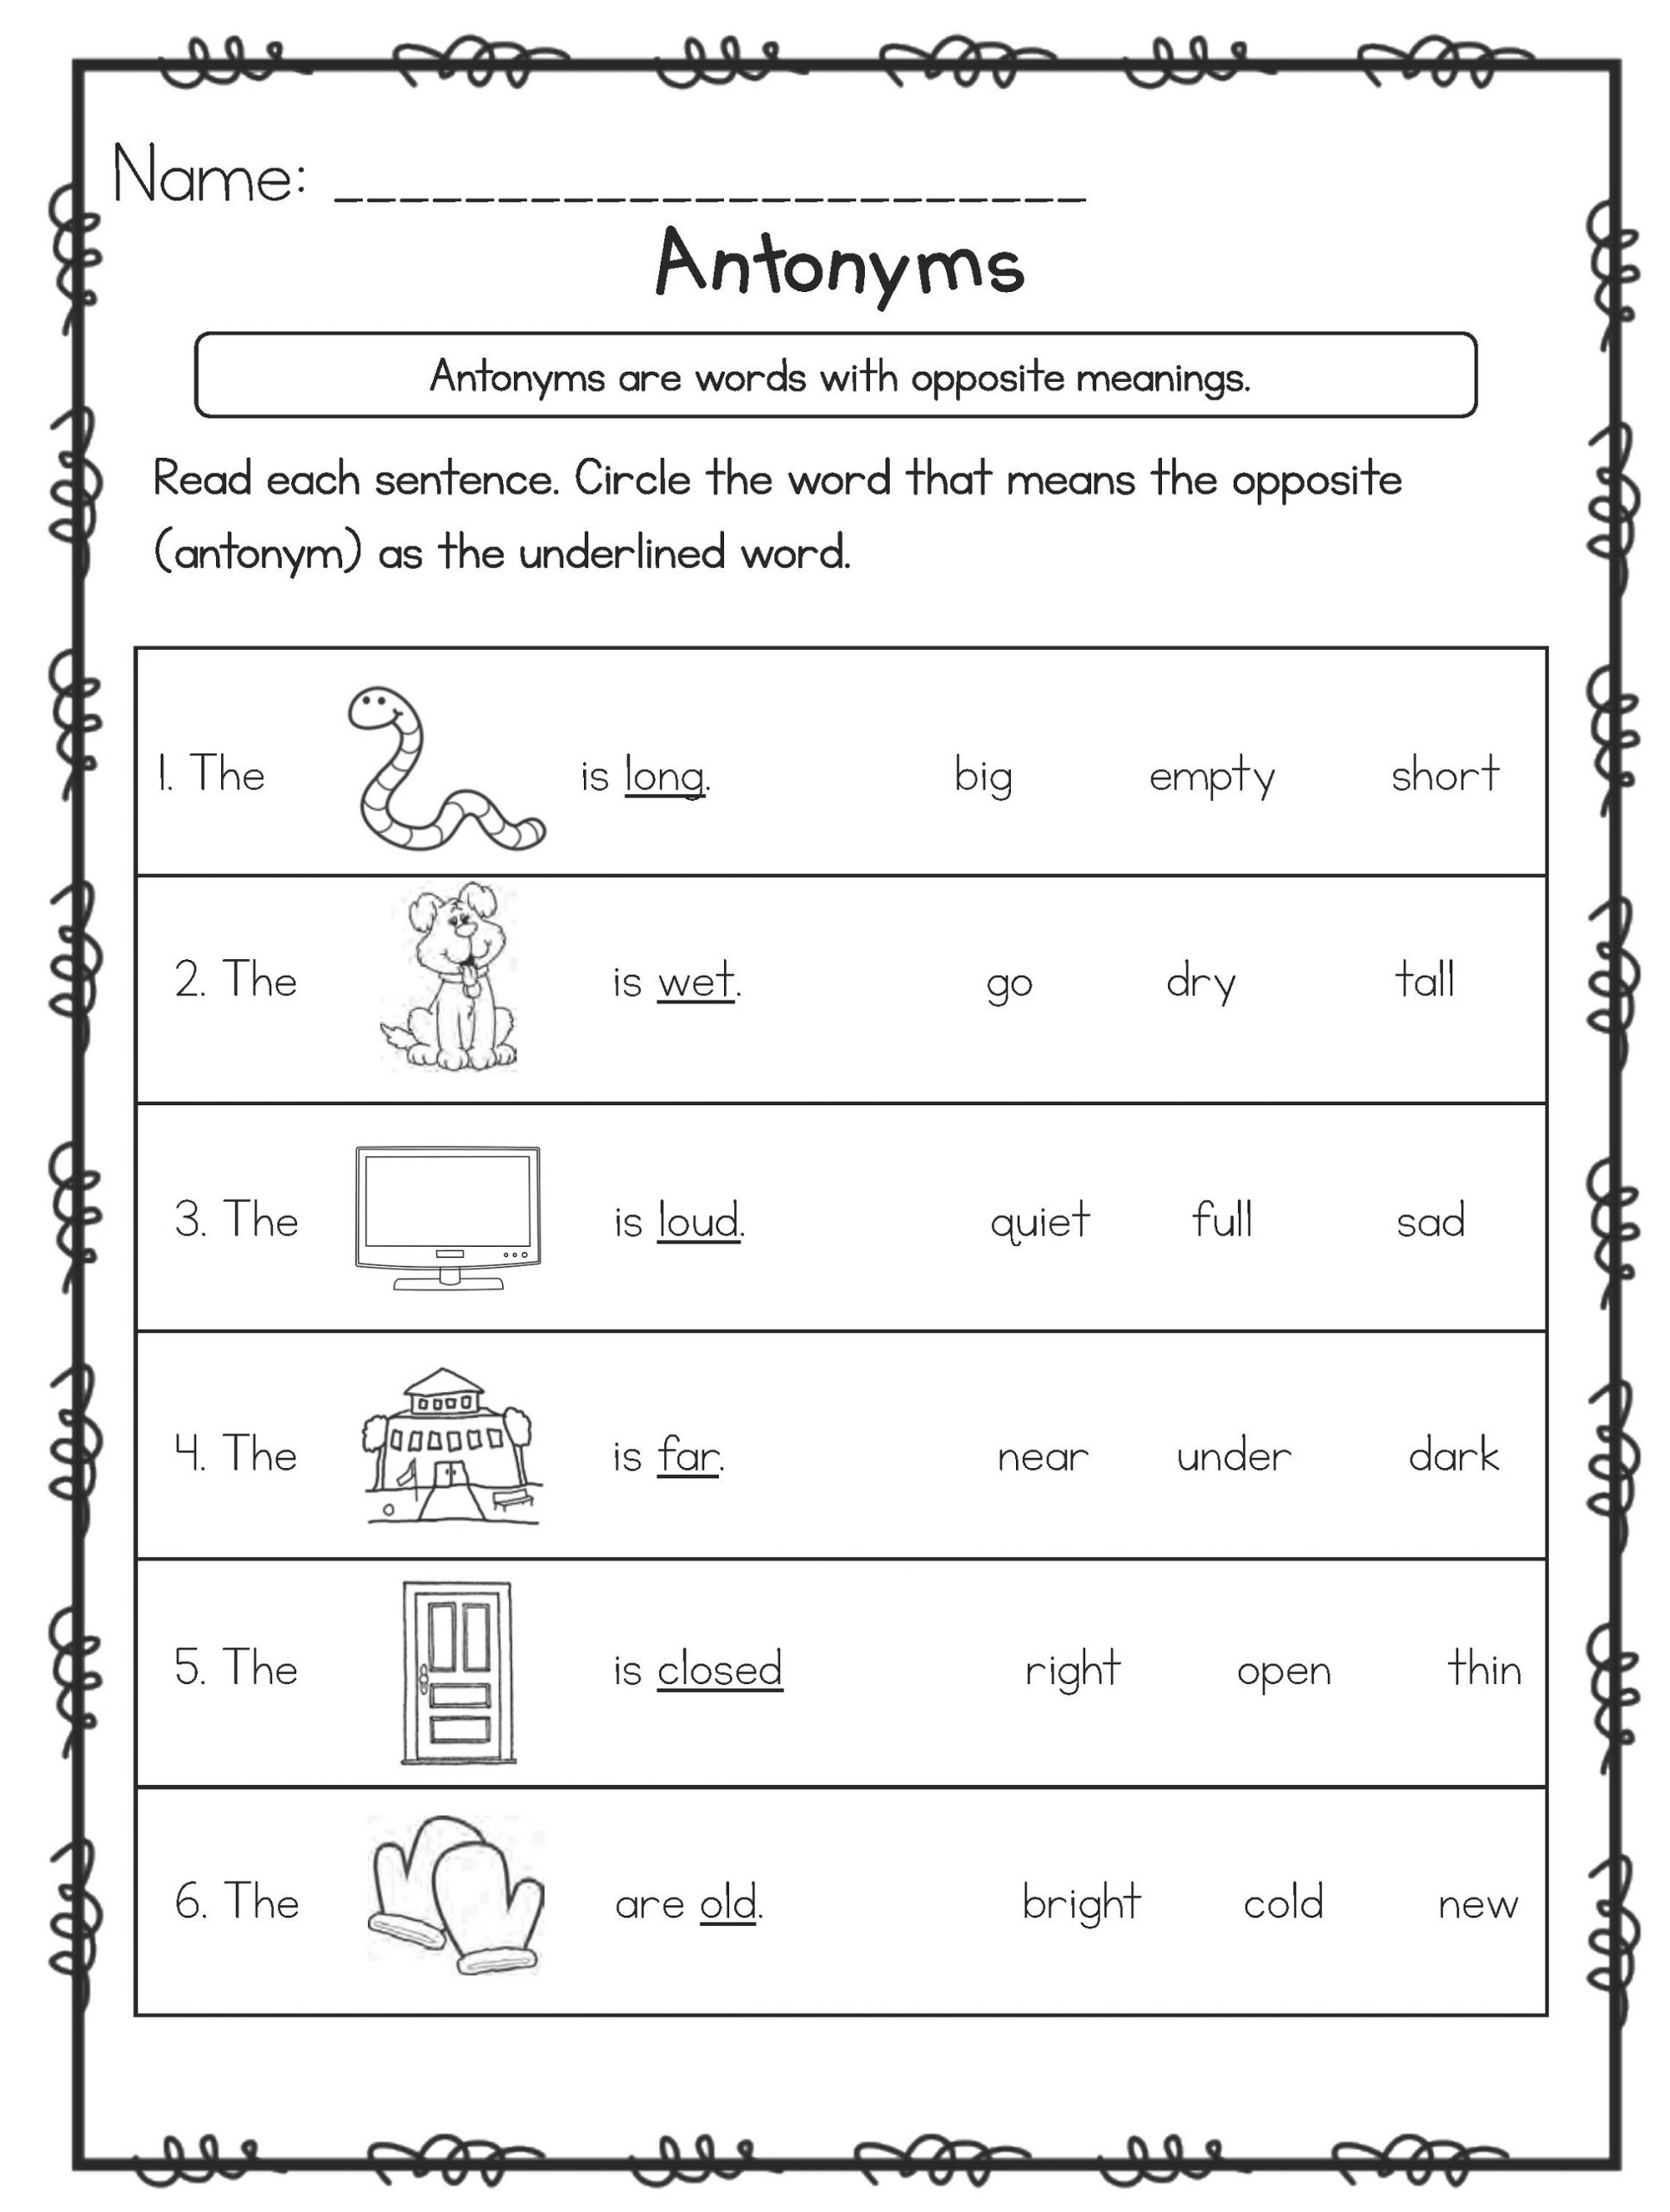 Antonyms Worksheets For 5 Year Olds